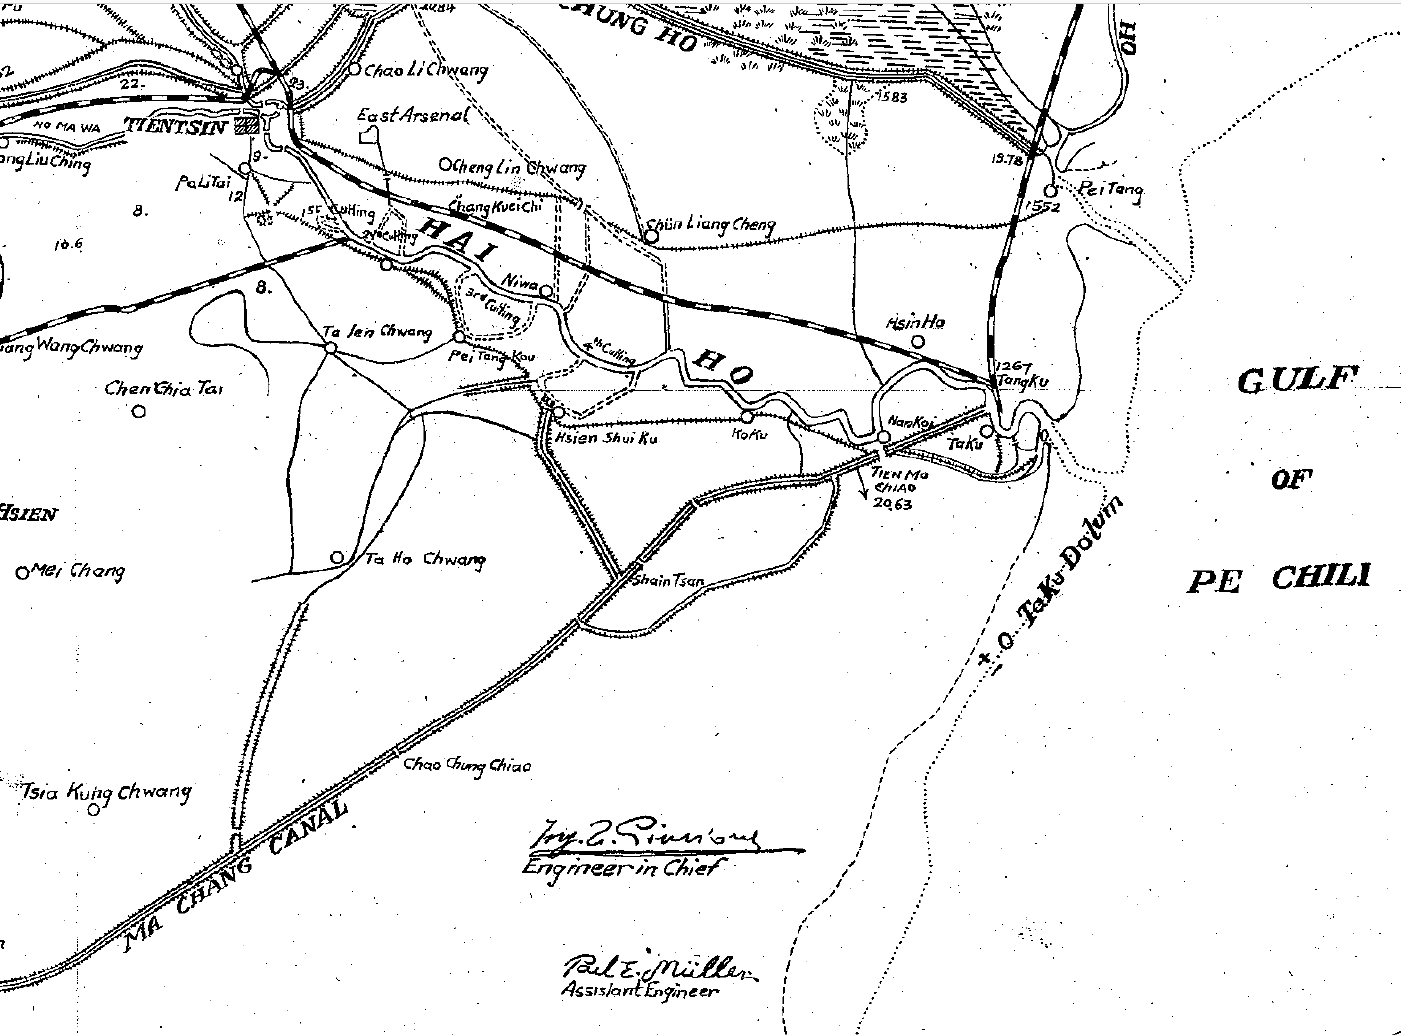 Figure 4: Partial image of map showing the location of Tanggu (spelled Tangku in the map) and the railway connecting Tanggu with Tianjin (spelled Tientsin in the map).